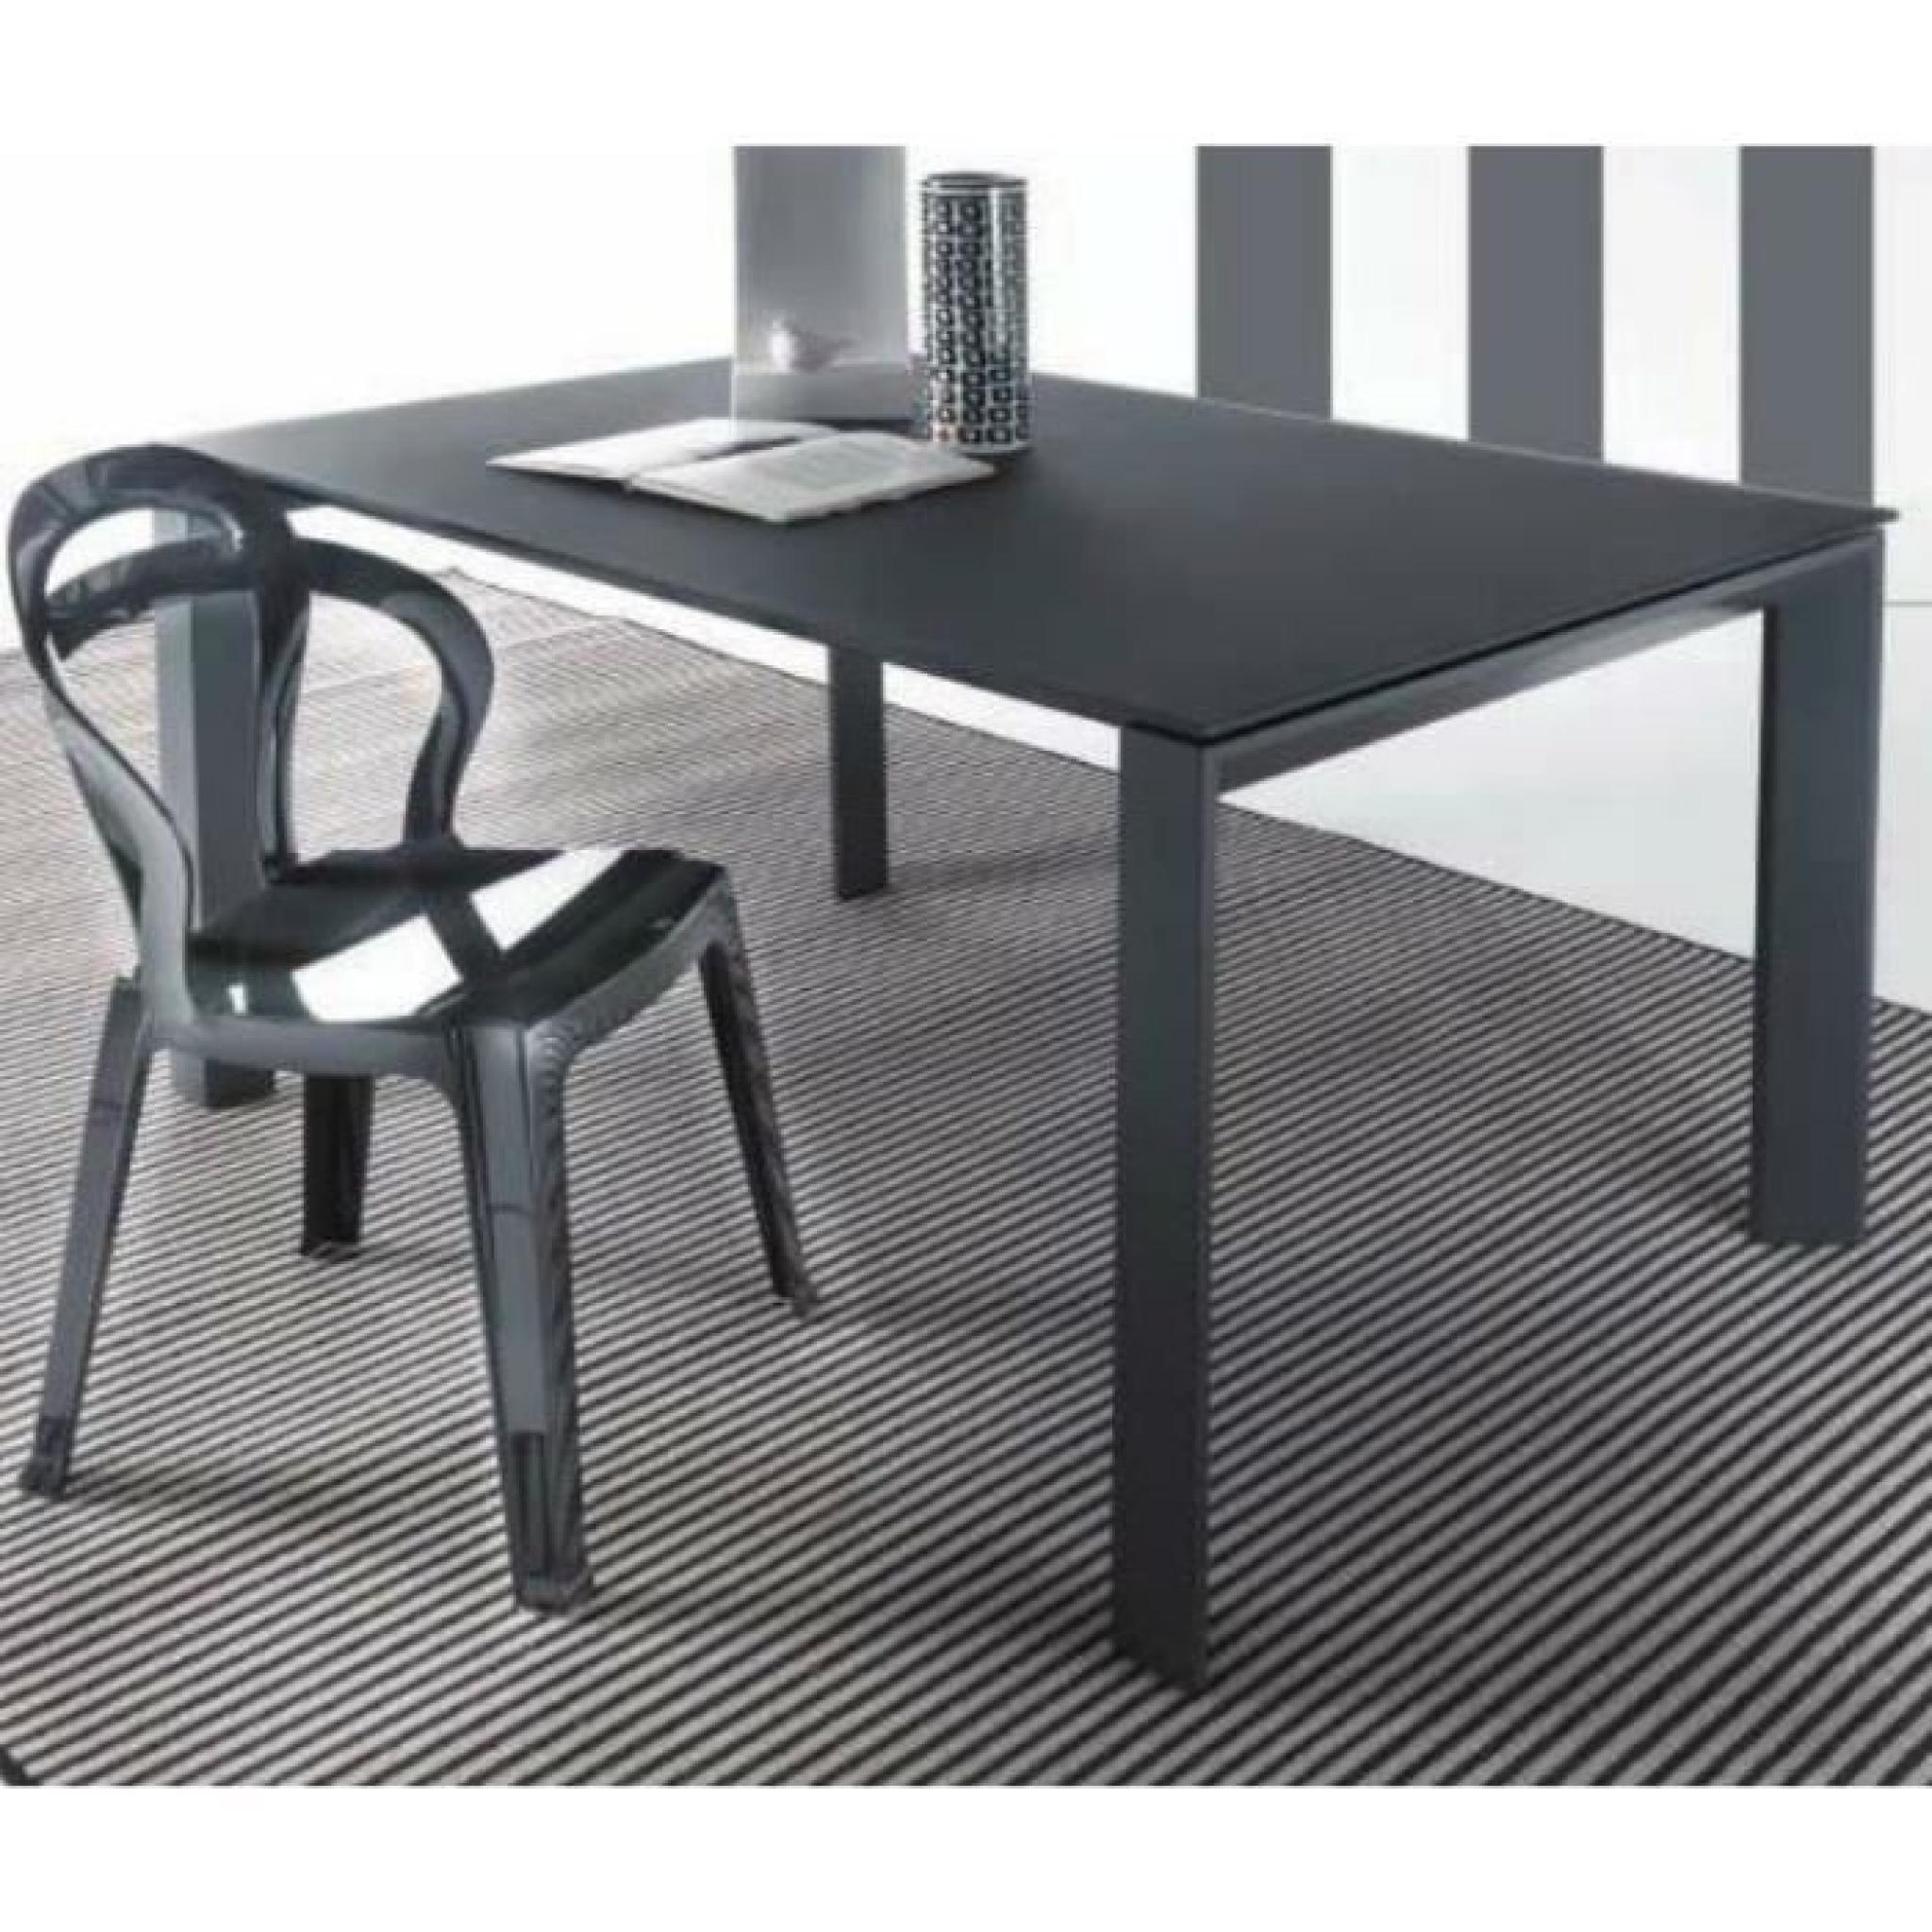 table repas extensible sliver en verre 140 x 9 achat vente table salle a manger pas cher. Black Bedroom Furniture Sets. Home Design Ideas